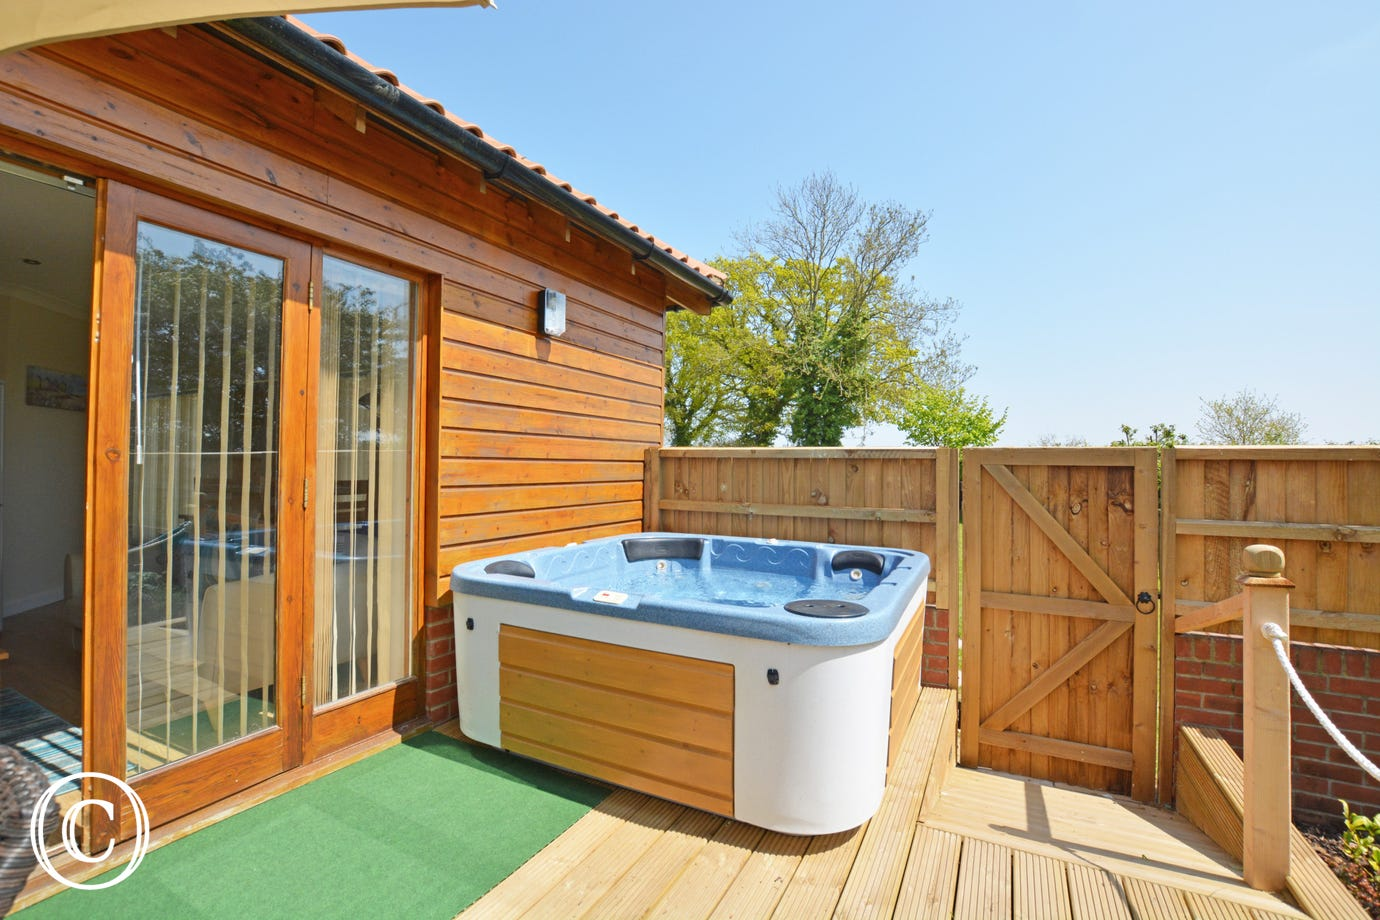 Private hot tub - perfect for relaxing